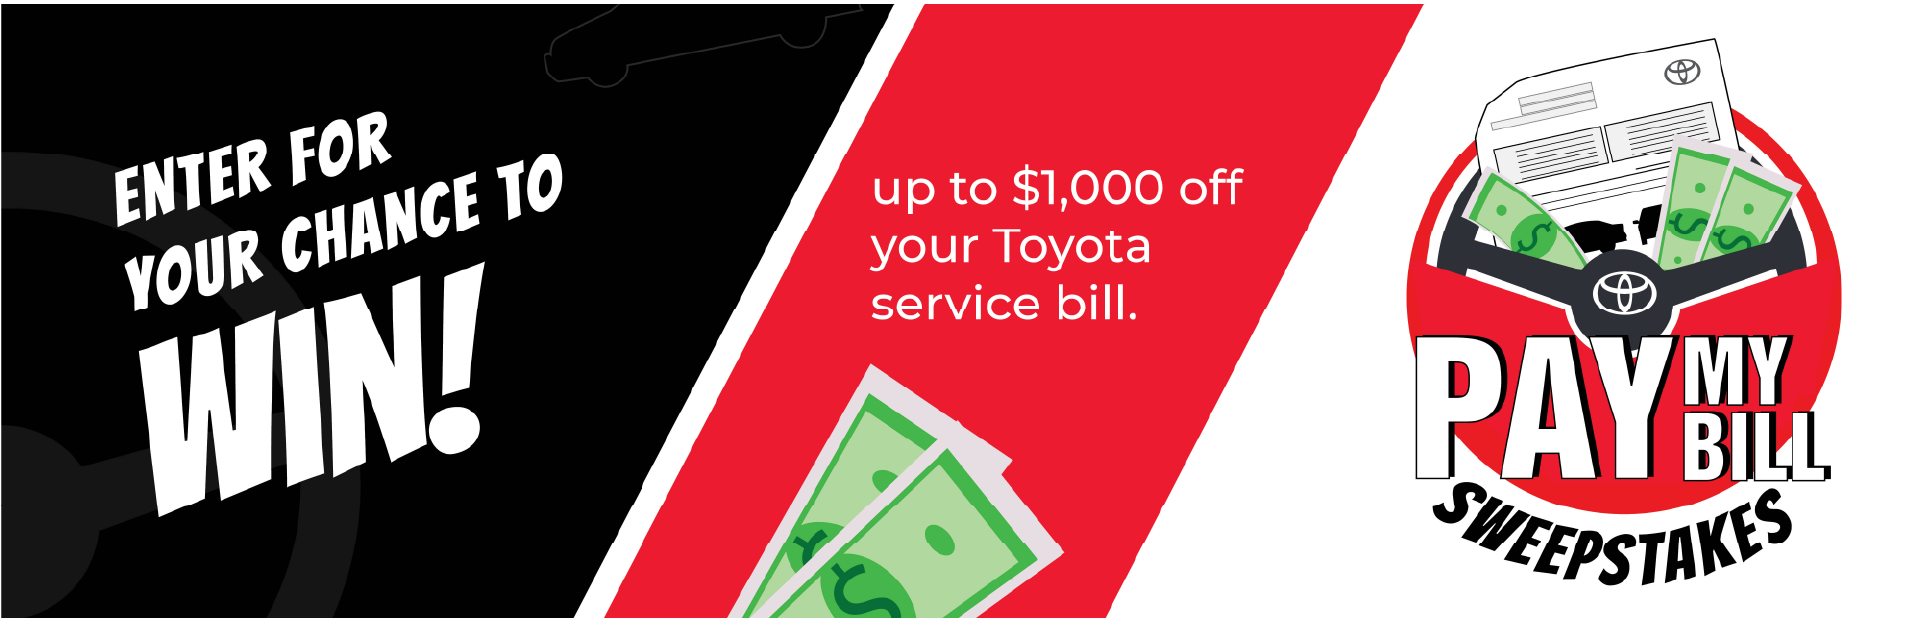 Toyota Pay Your Bill Sweepstakes